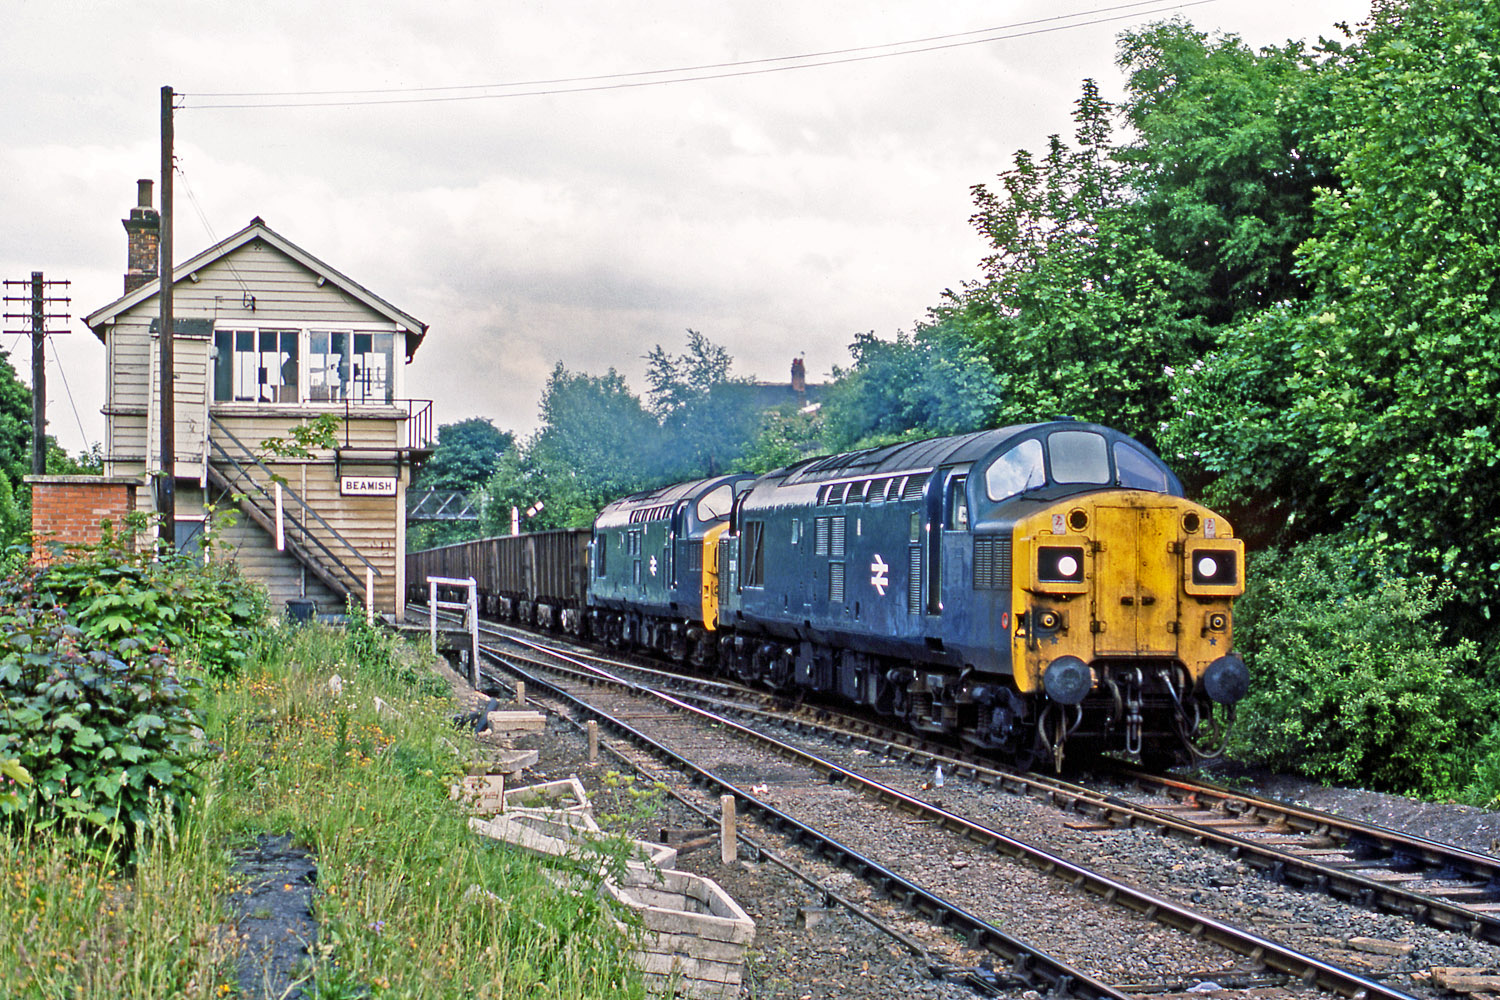 37079 and 37016 head through Beamish with an iron ore train on 20 June 1978. Photo copyright Stephen McGahon